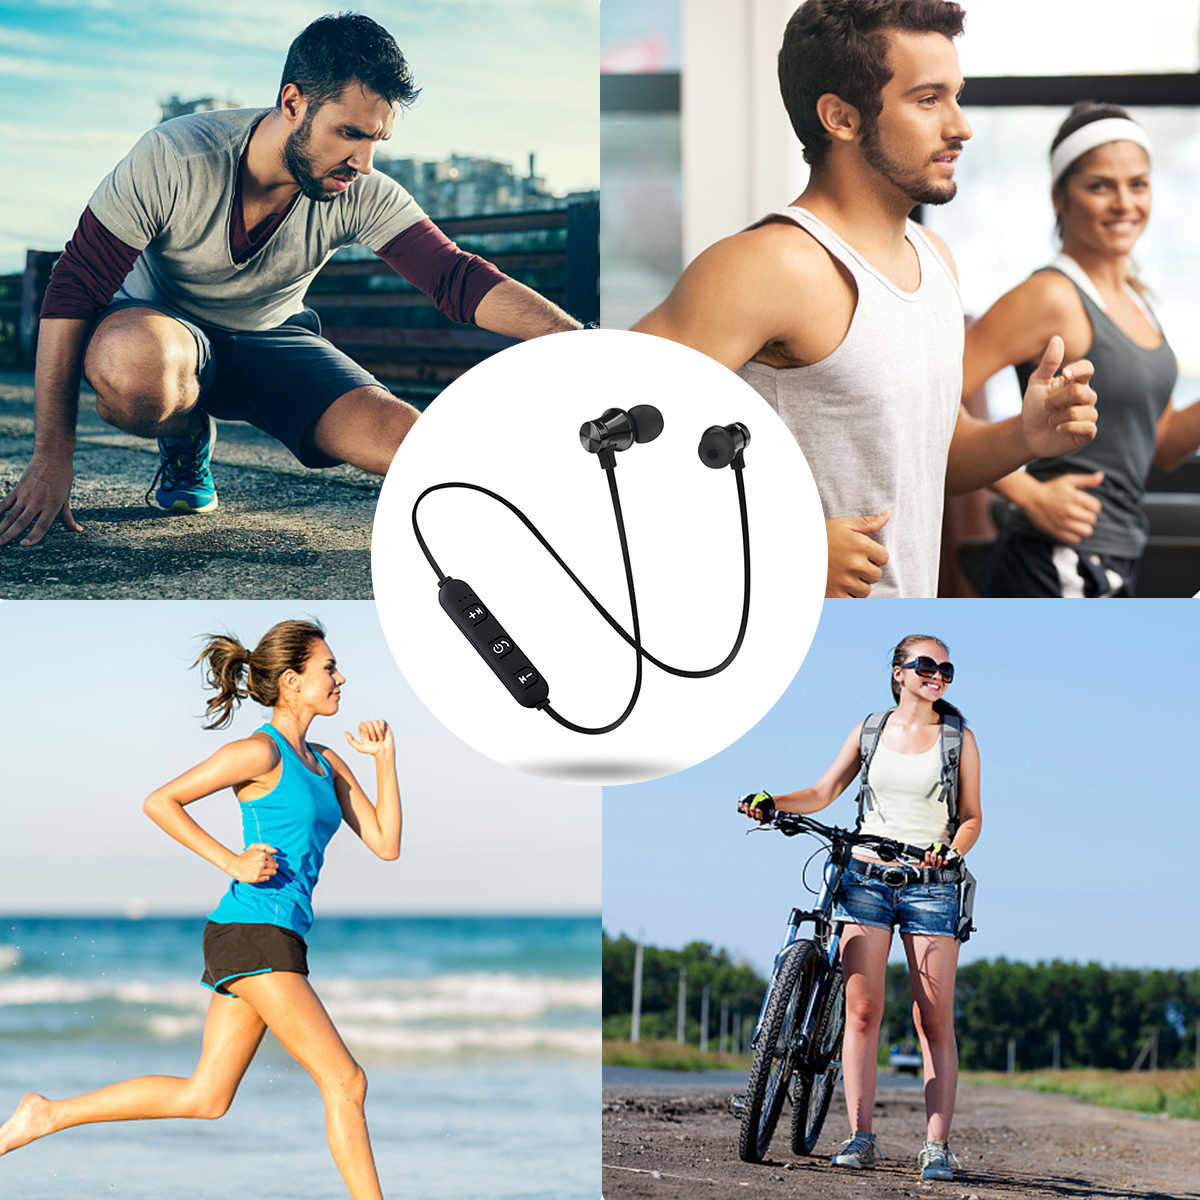 S8 Wireless Bluetooth Earphone Magnetic Headphones Sports Stereo Bass Music Earpieces Earplug Wireless Headset with Microphone